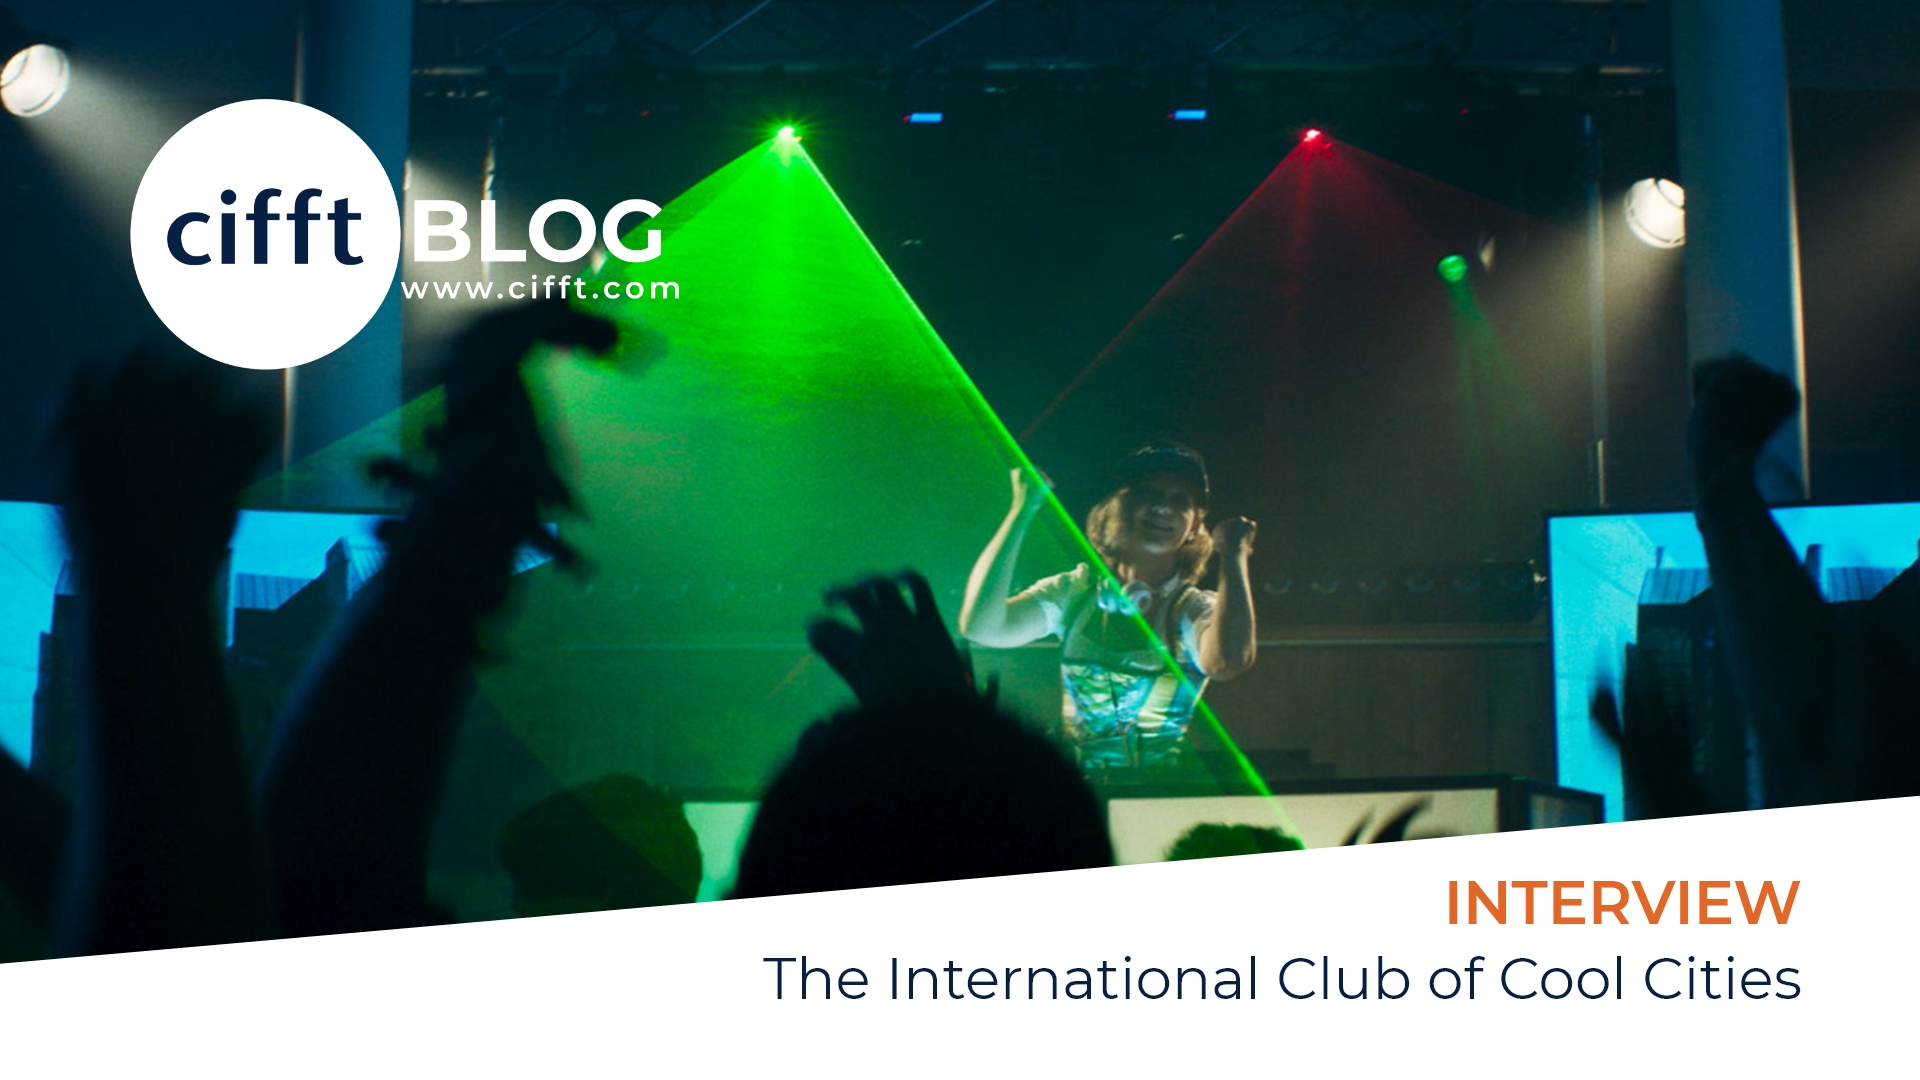 The International Club of Cool Cities